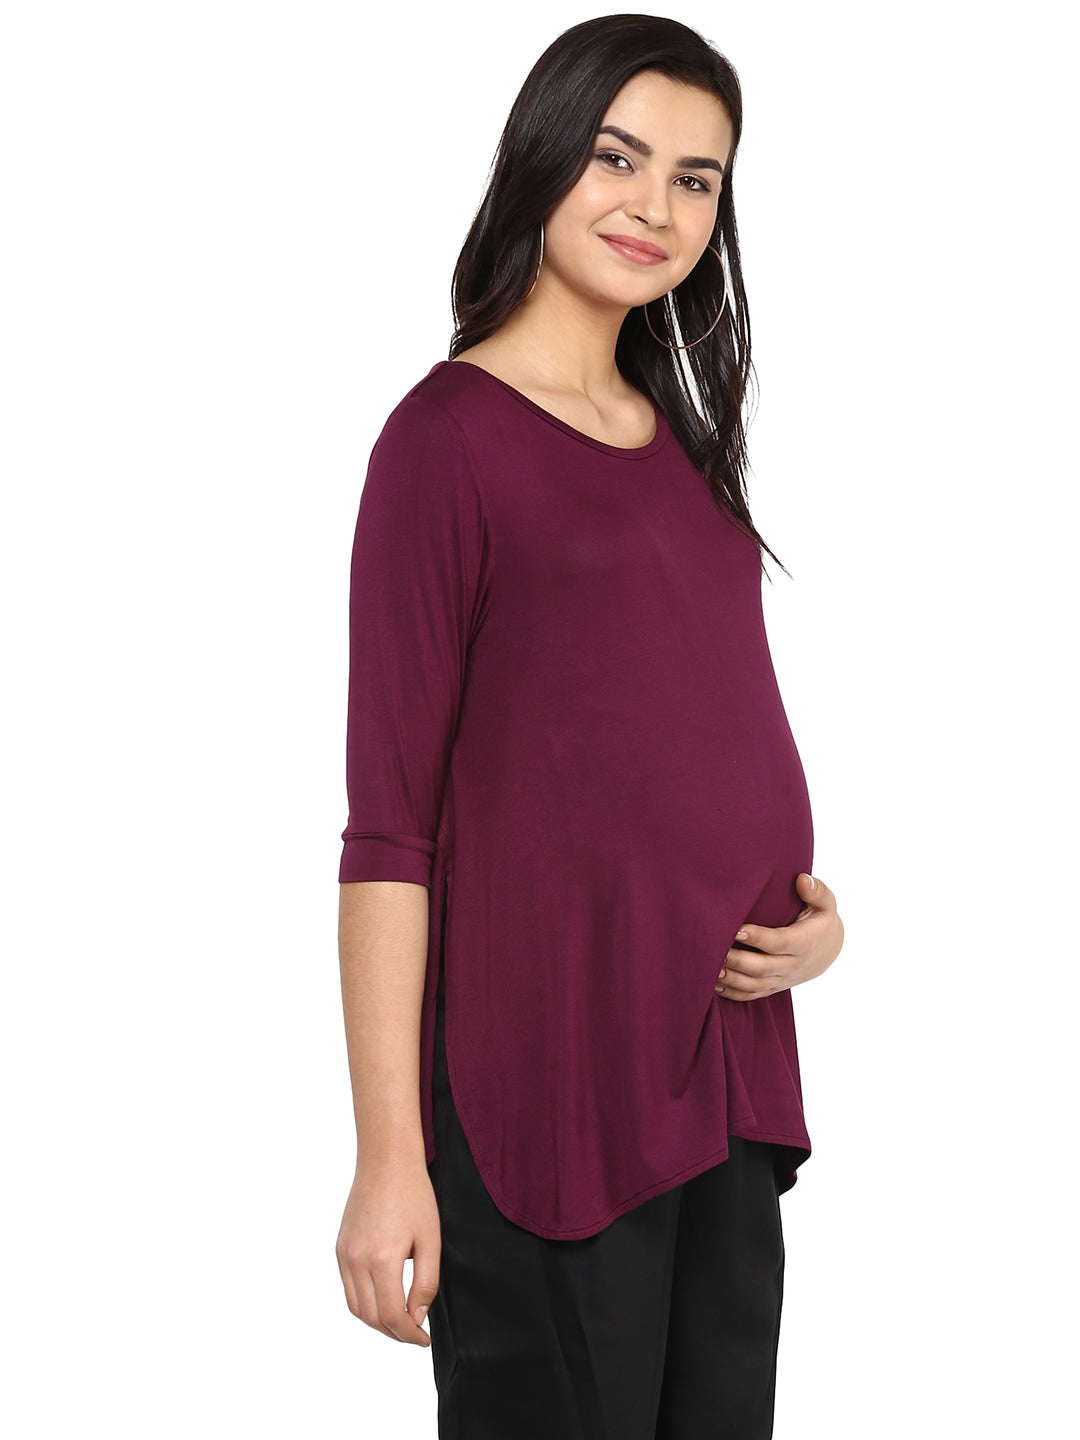 Side Overlap Nursing  Top - momsoon maternity fashion wear